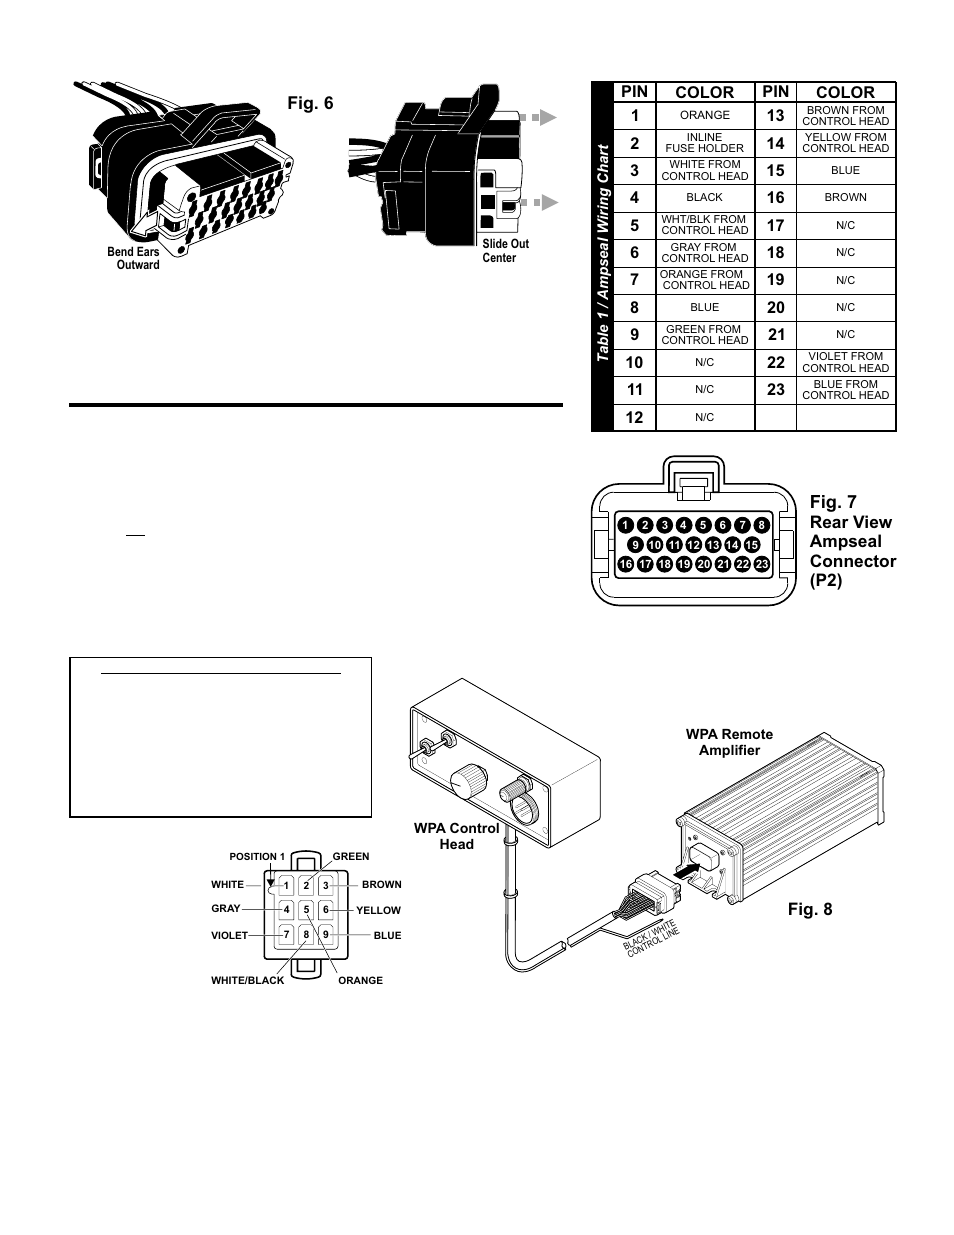 Whelen Light Controller Wiring Diagram Electrical Diagrams Jerr Dan Strobe Fig 7 8 Lighting Control Wpa1 User Manual Page 5 Signal